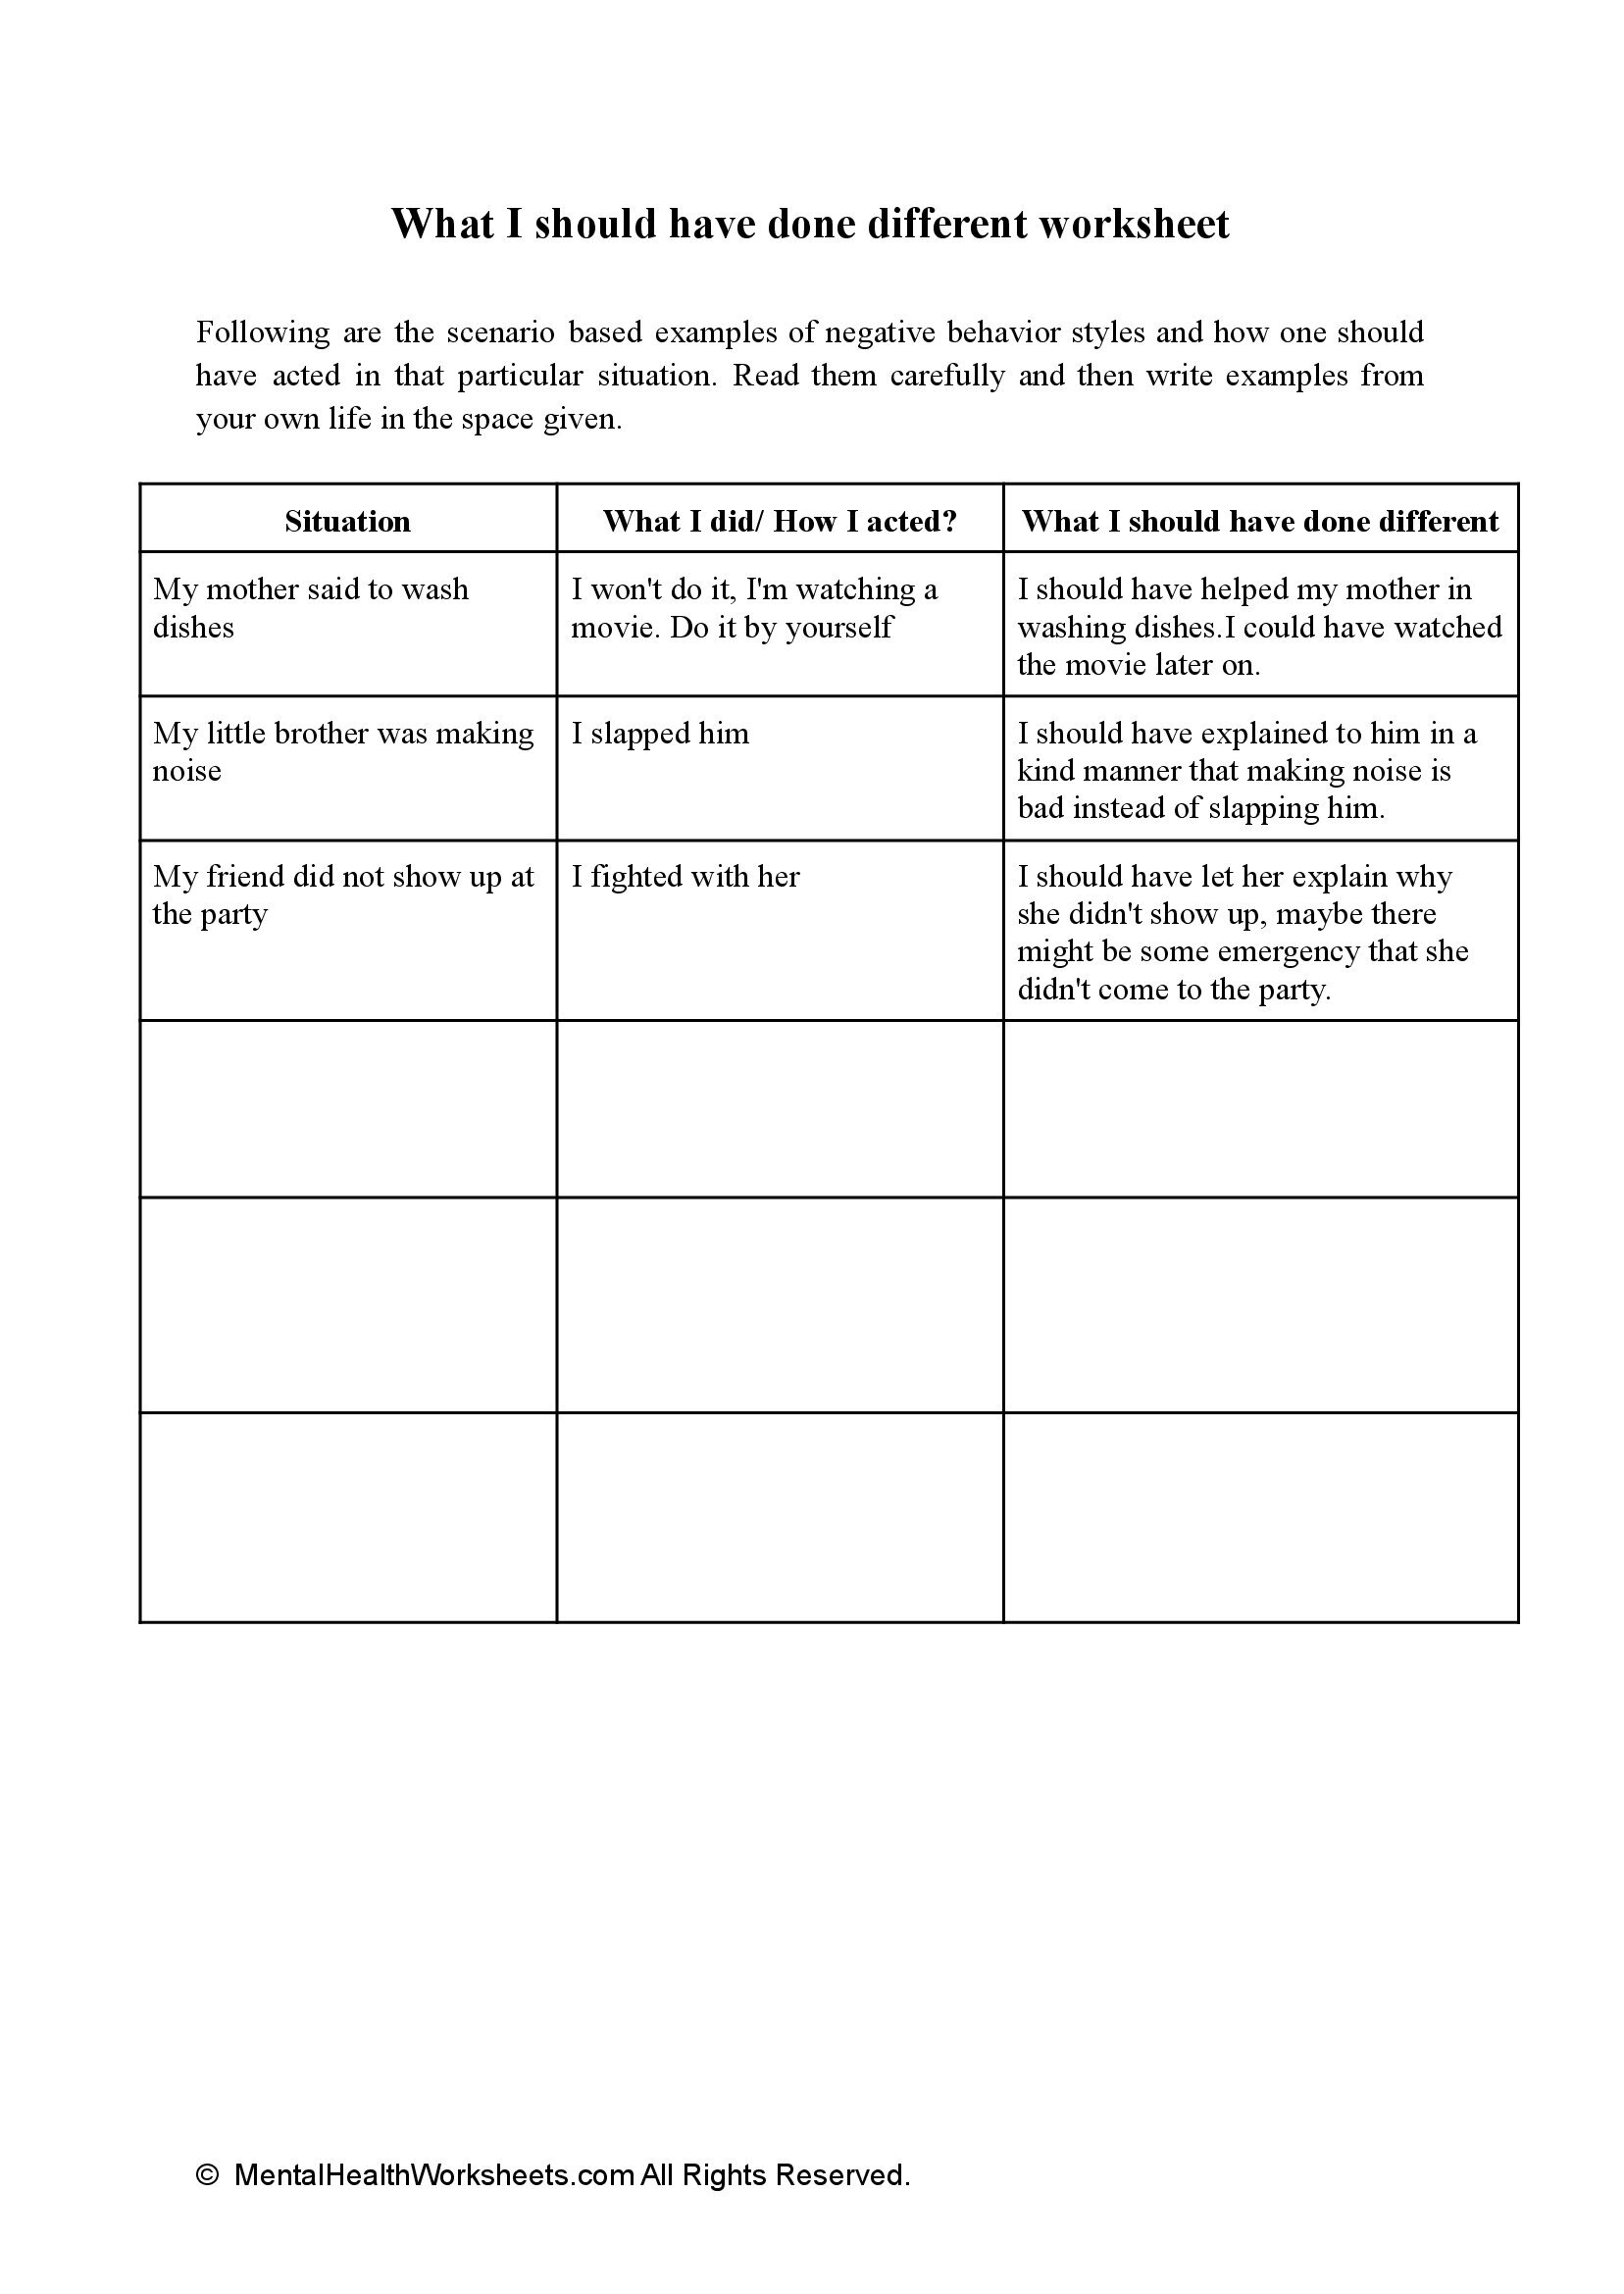 What I should have done different worksheet